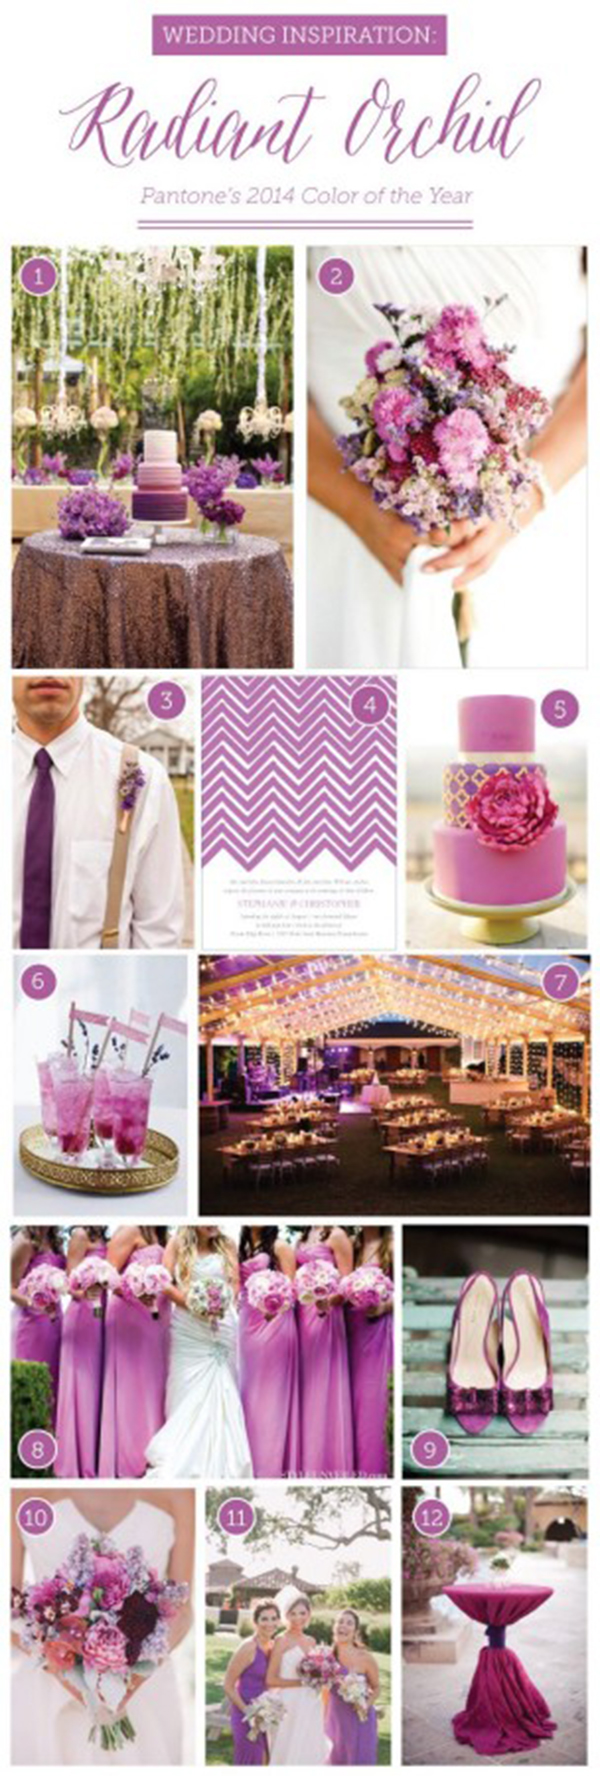 radiant-orchid-tendencia-para-2014-5